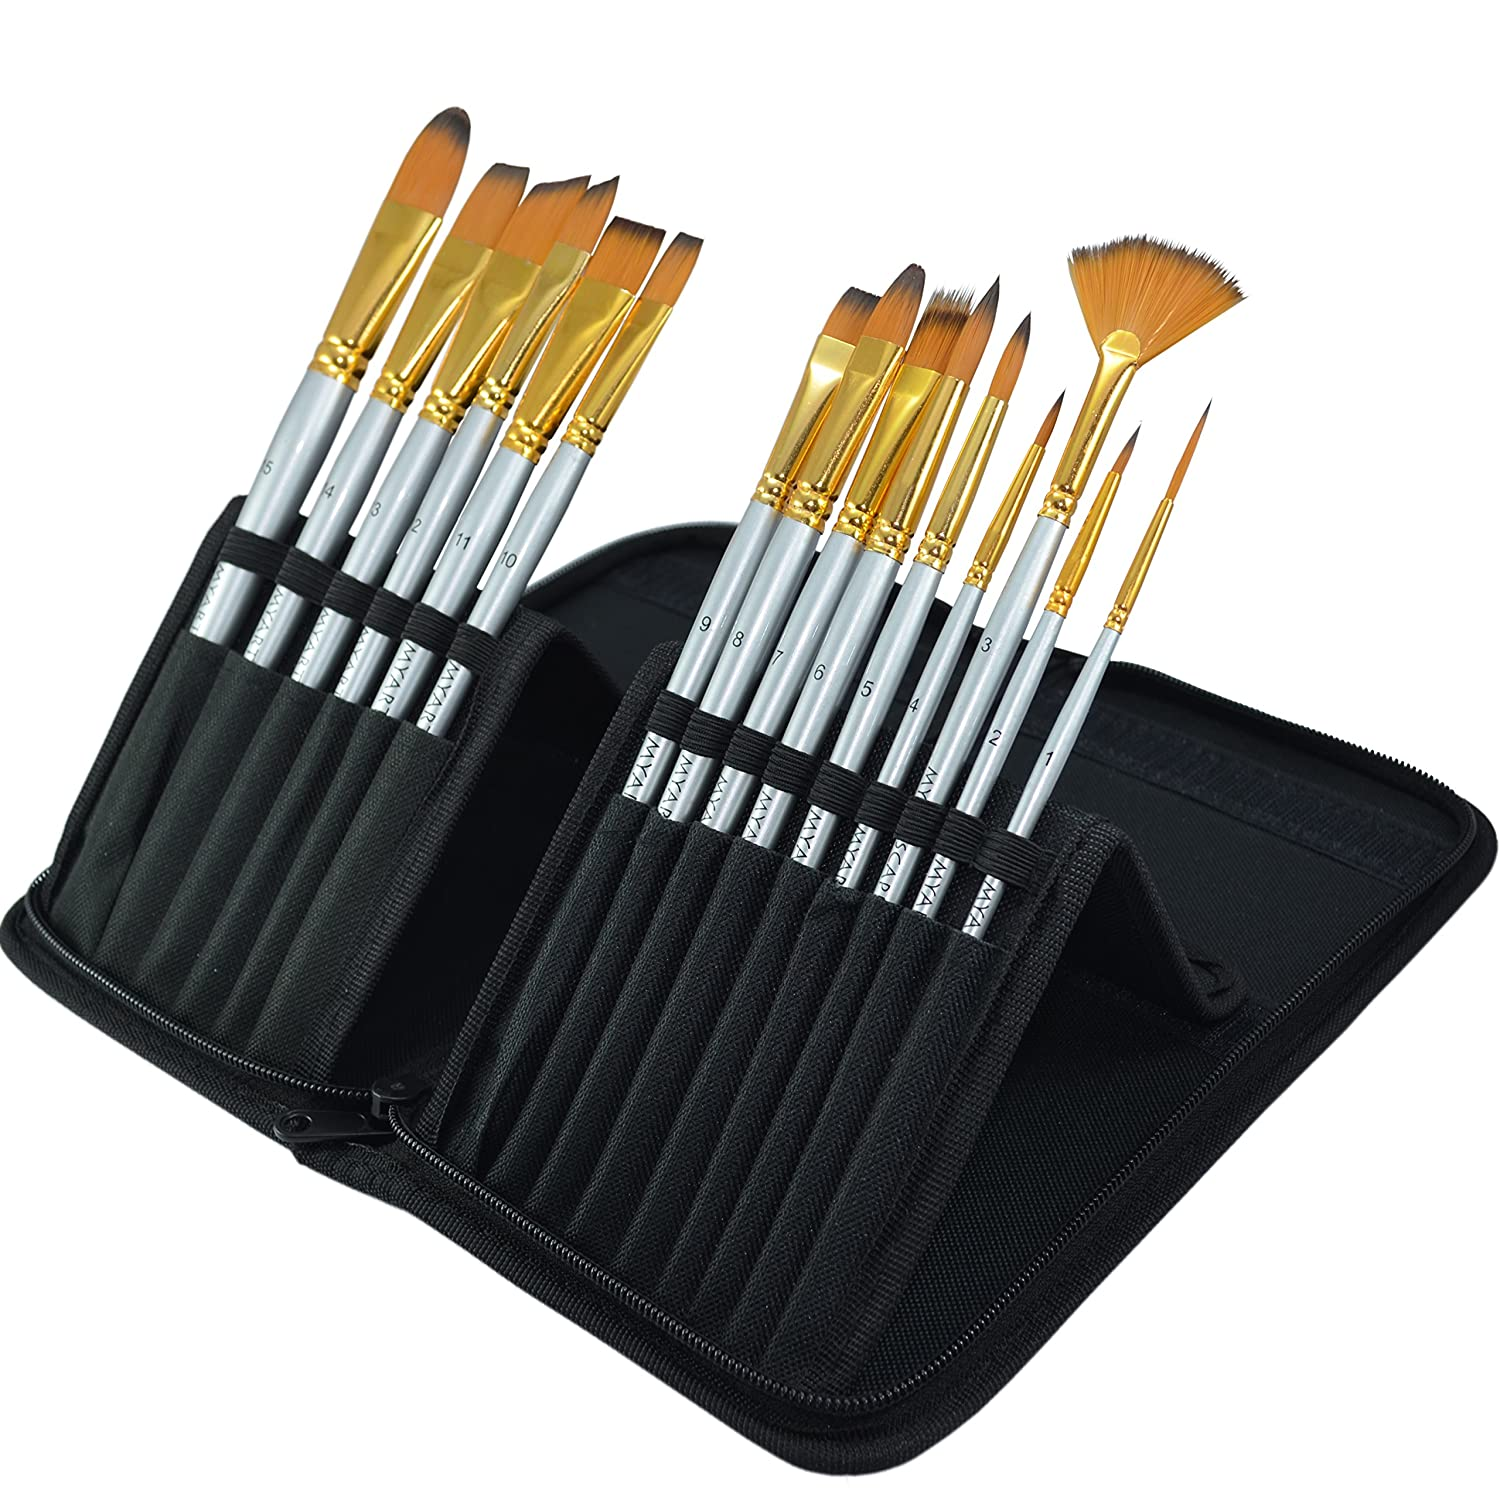 MyArtscape 15 Synthetic Short Handle Paint Brushes